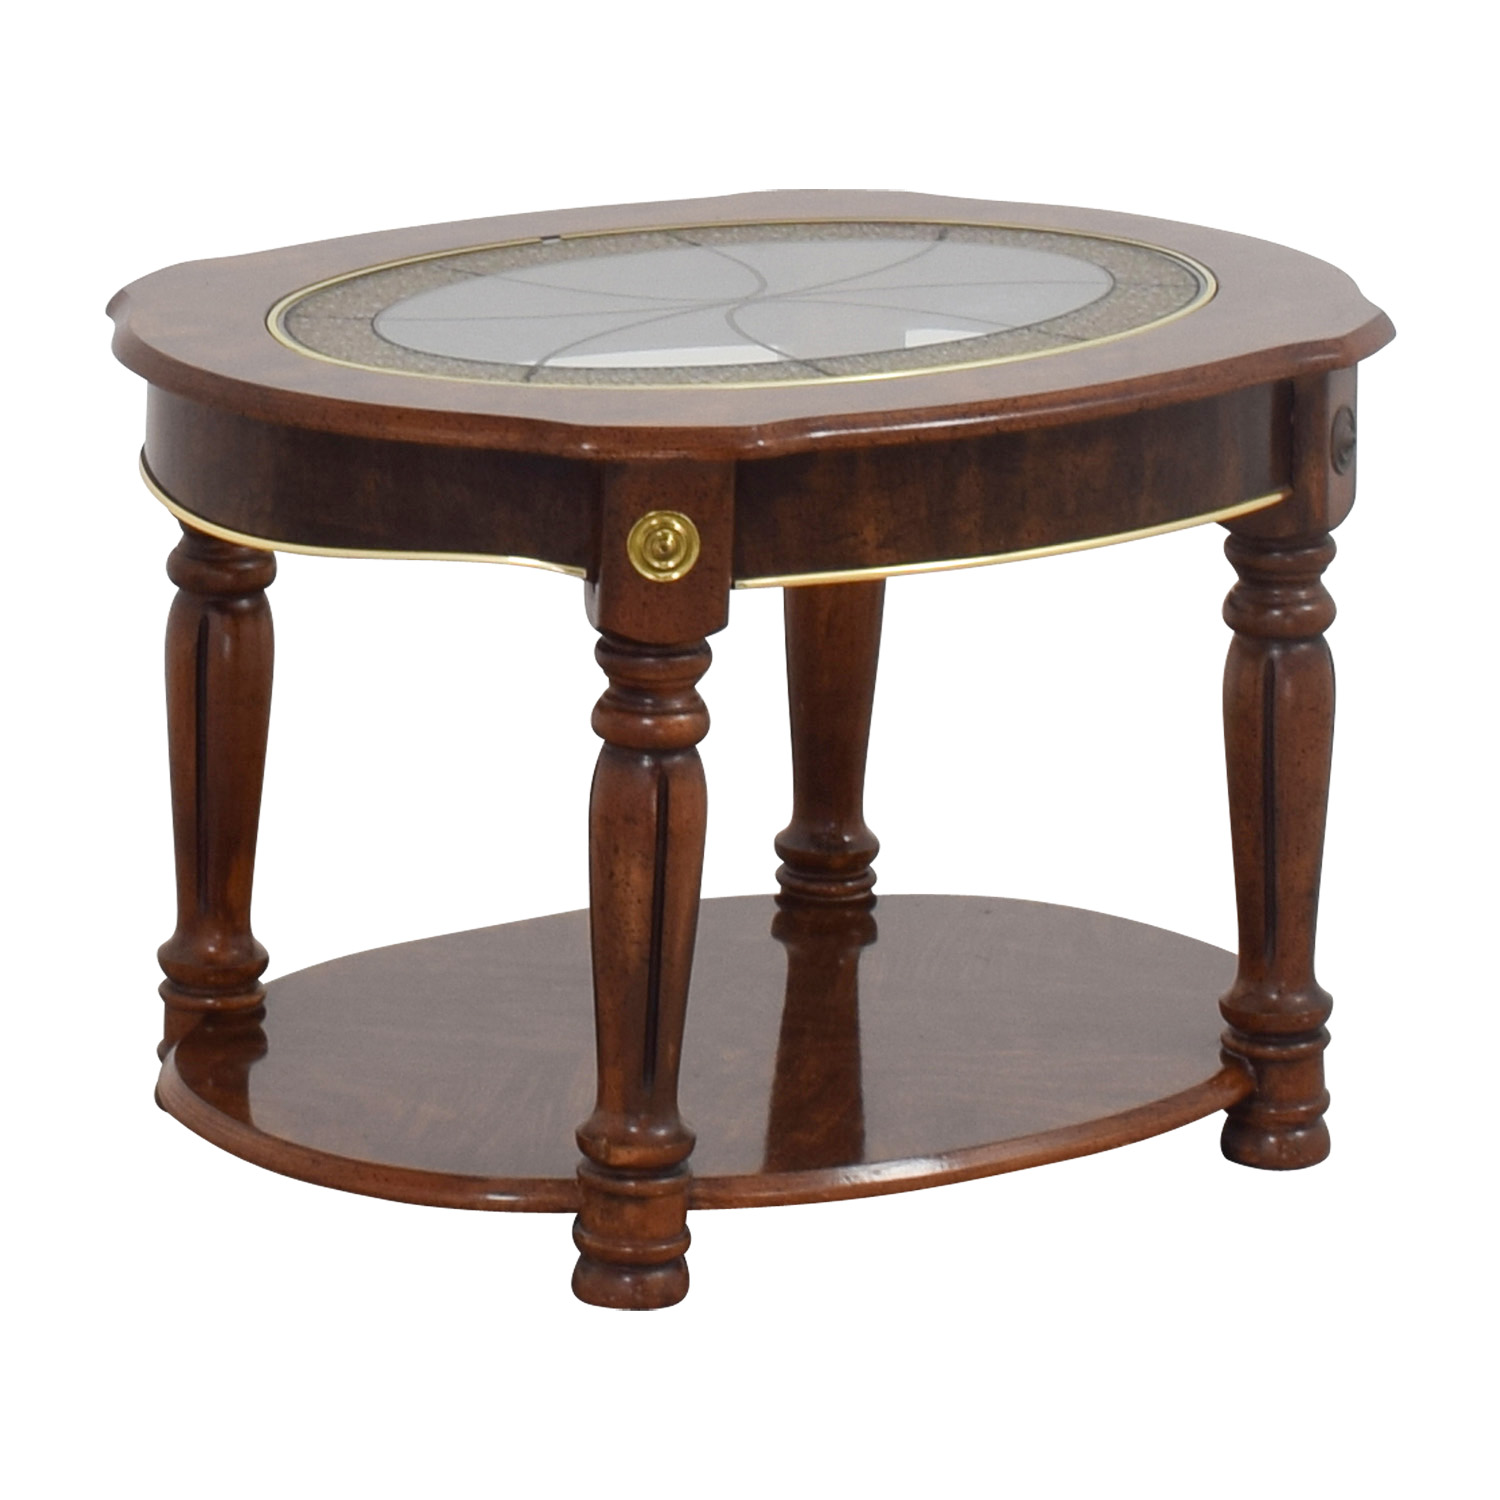 Round Coffee Table Dimensions: Vintage Small Round Coffee Table / Tables